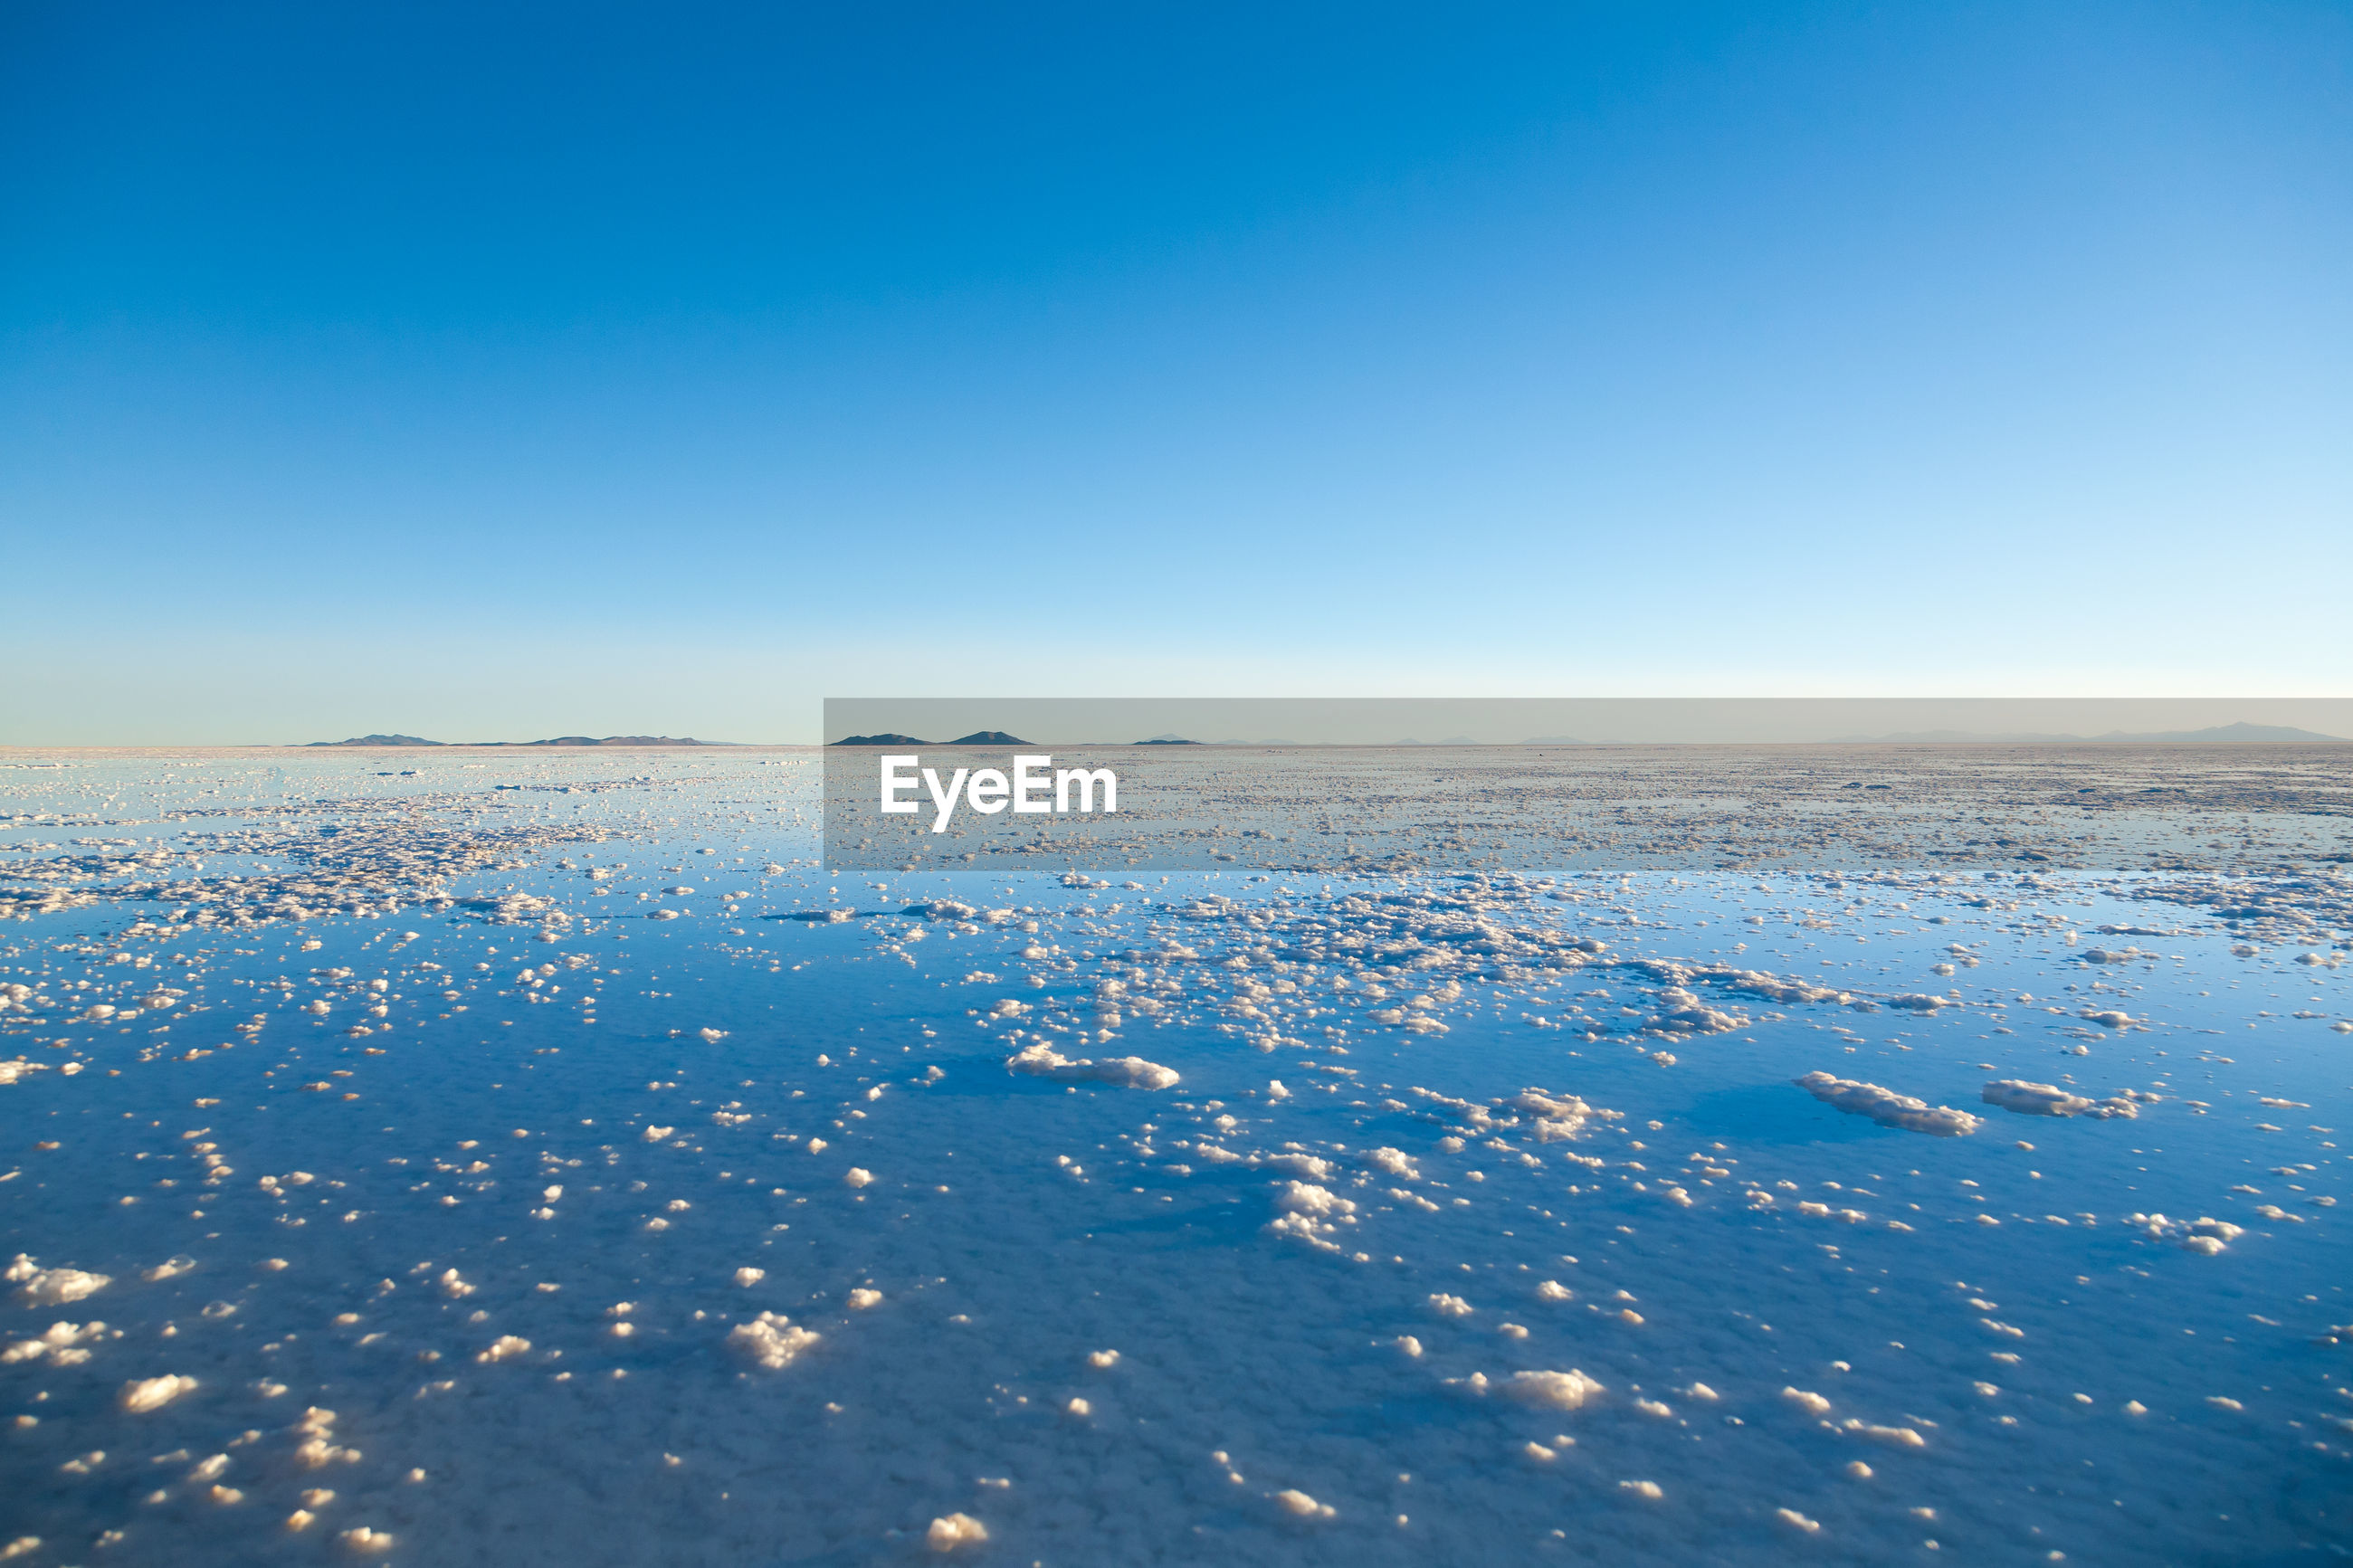 SCENIC VIEW OF SNOW AGAINST CLEAR BLUE SKY